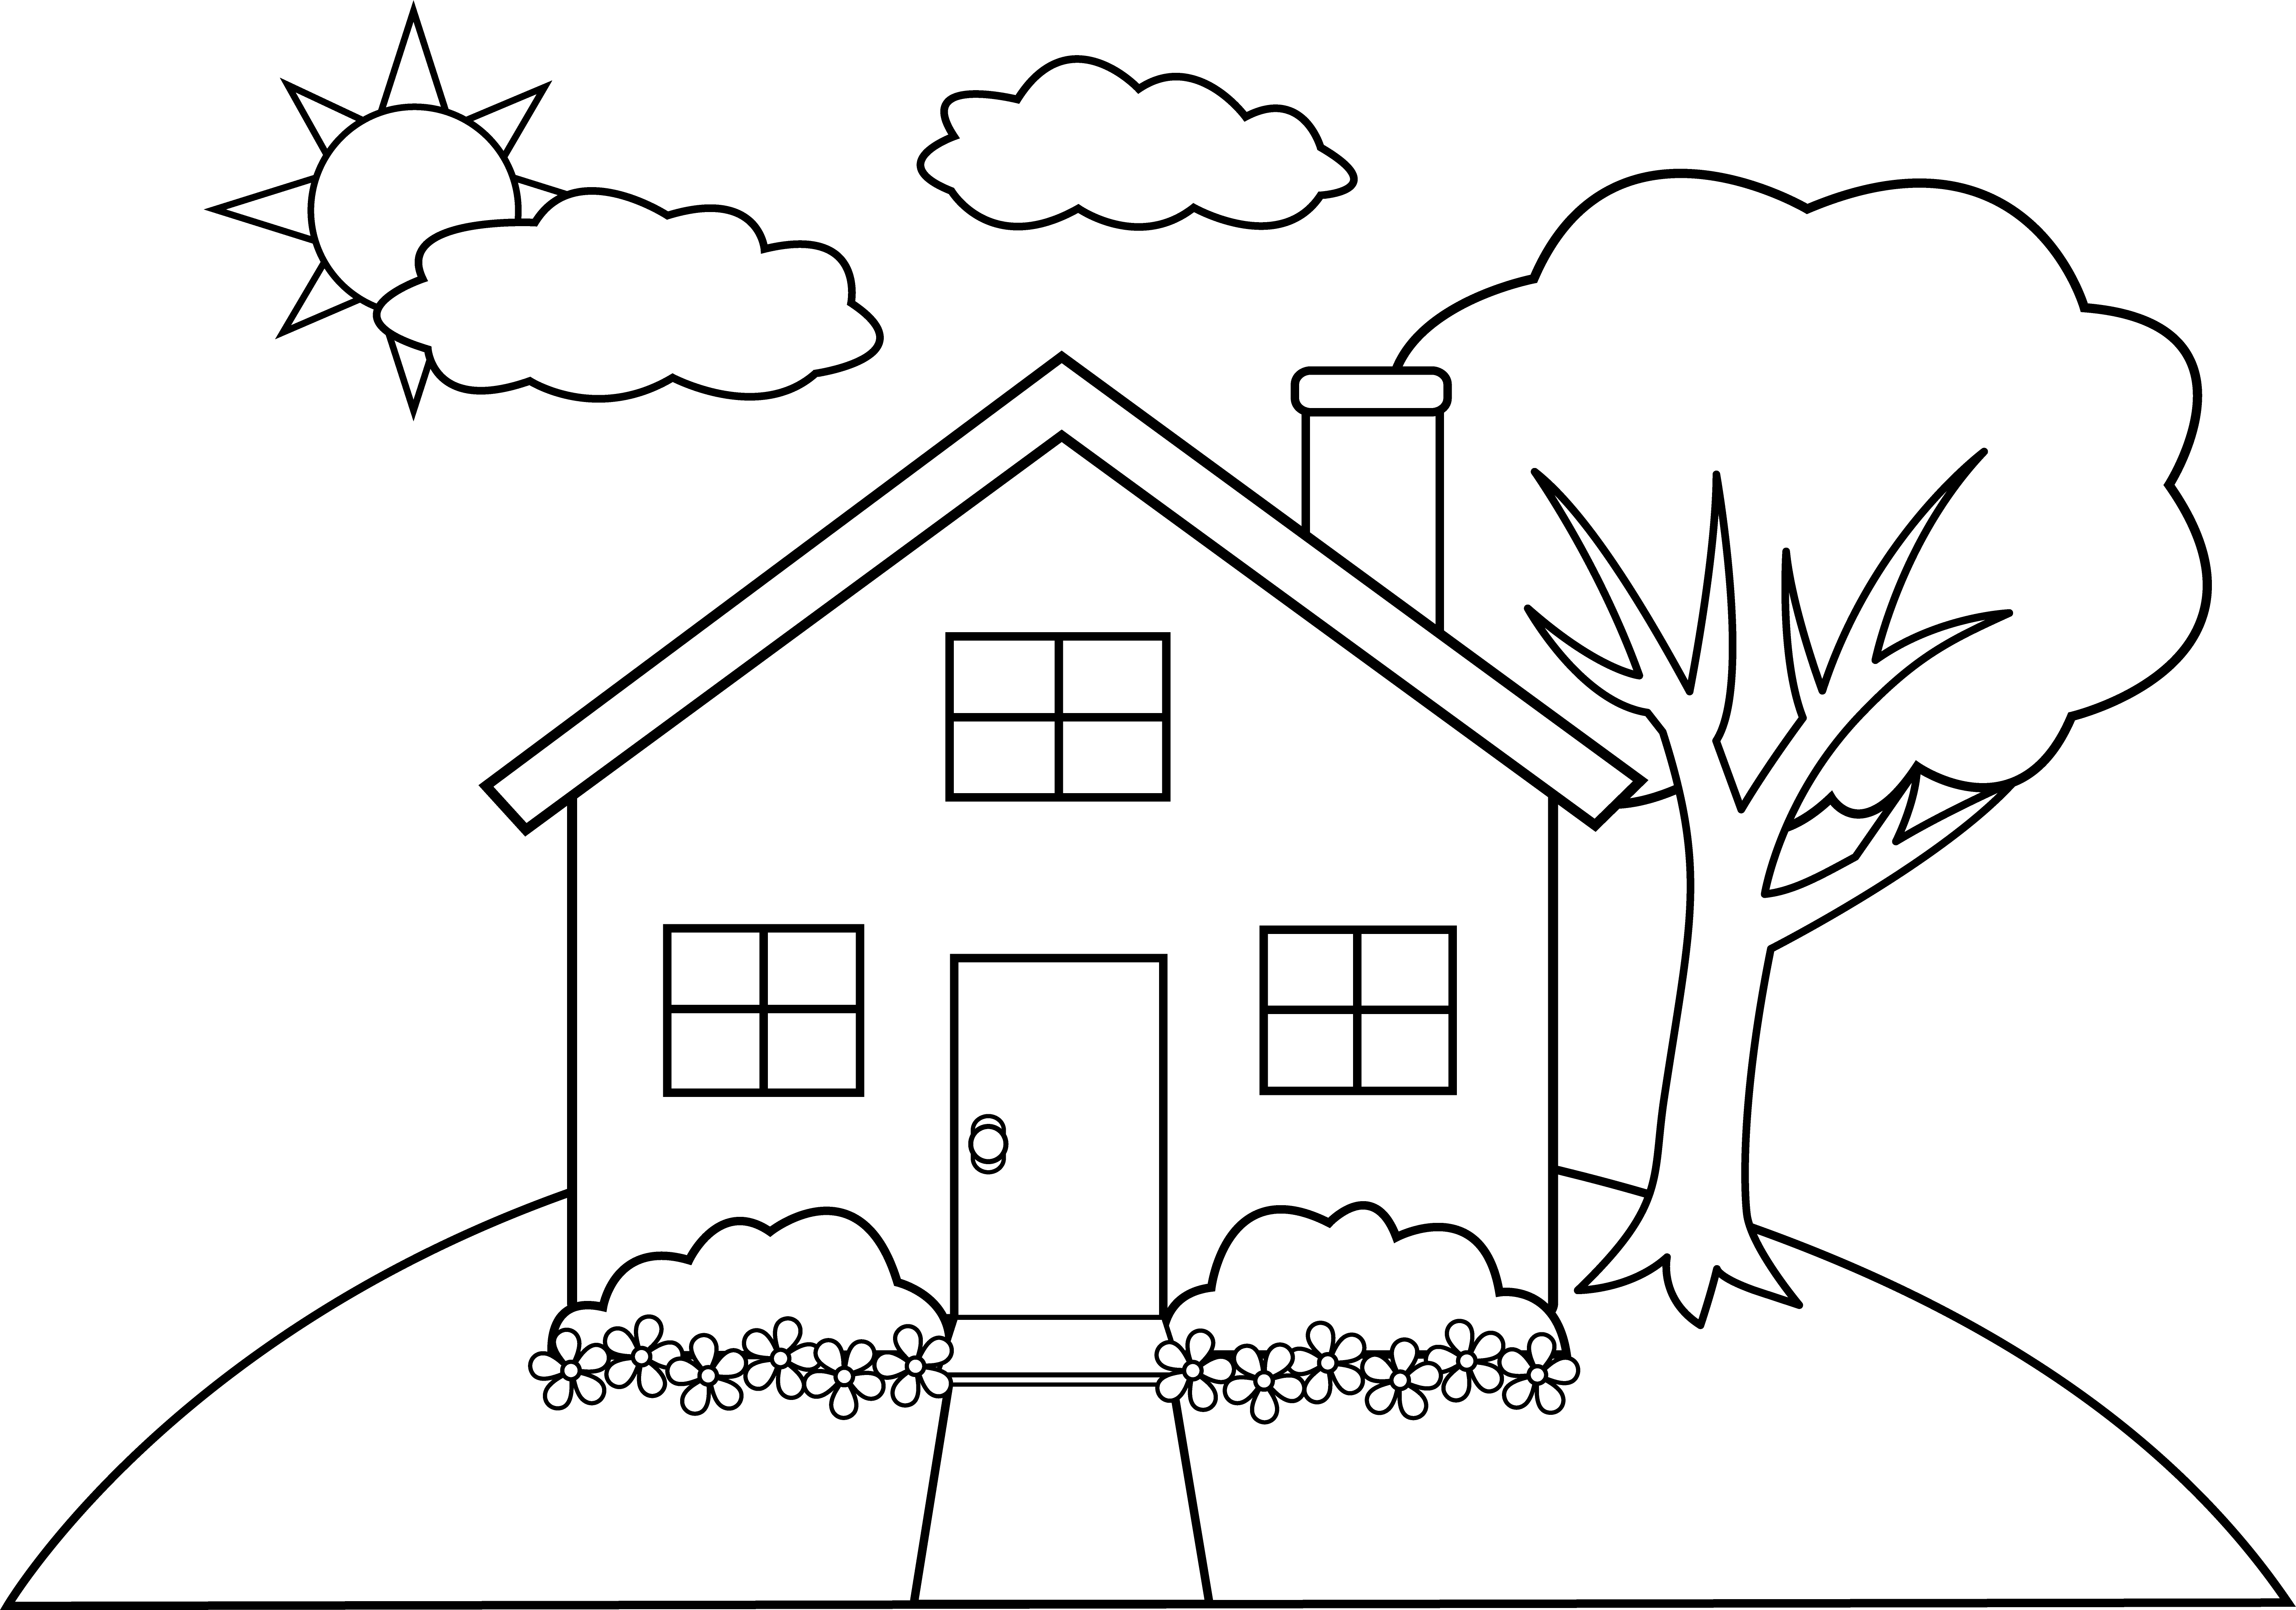 Drawn hill clip art Line a a Colorable House